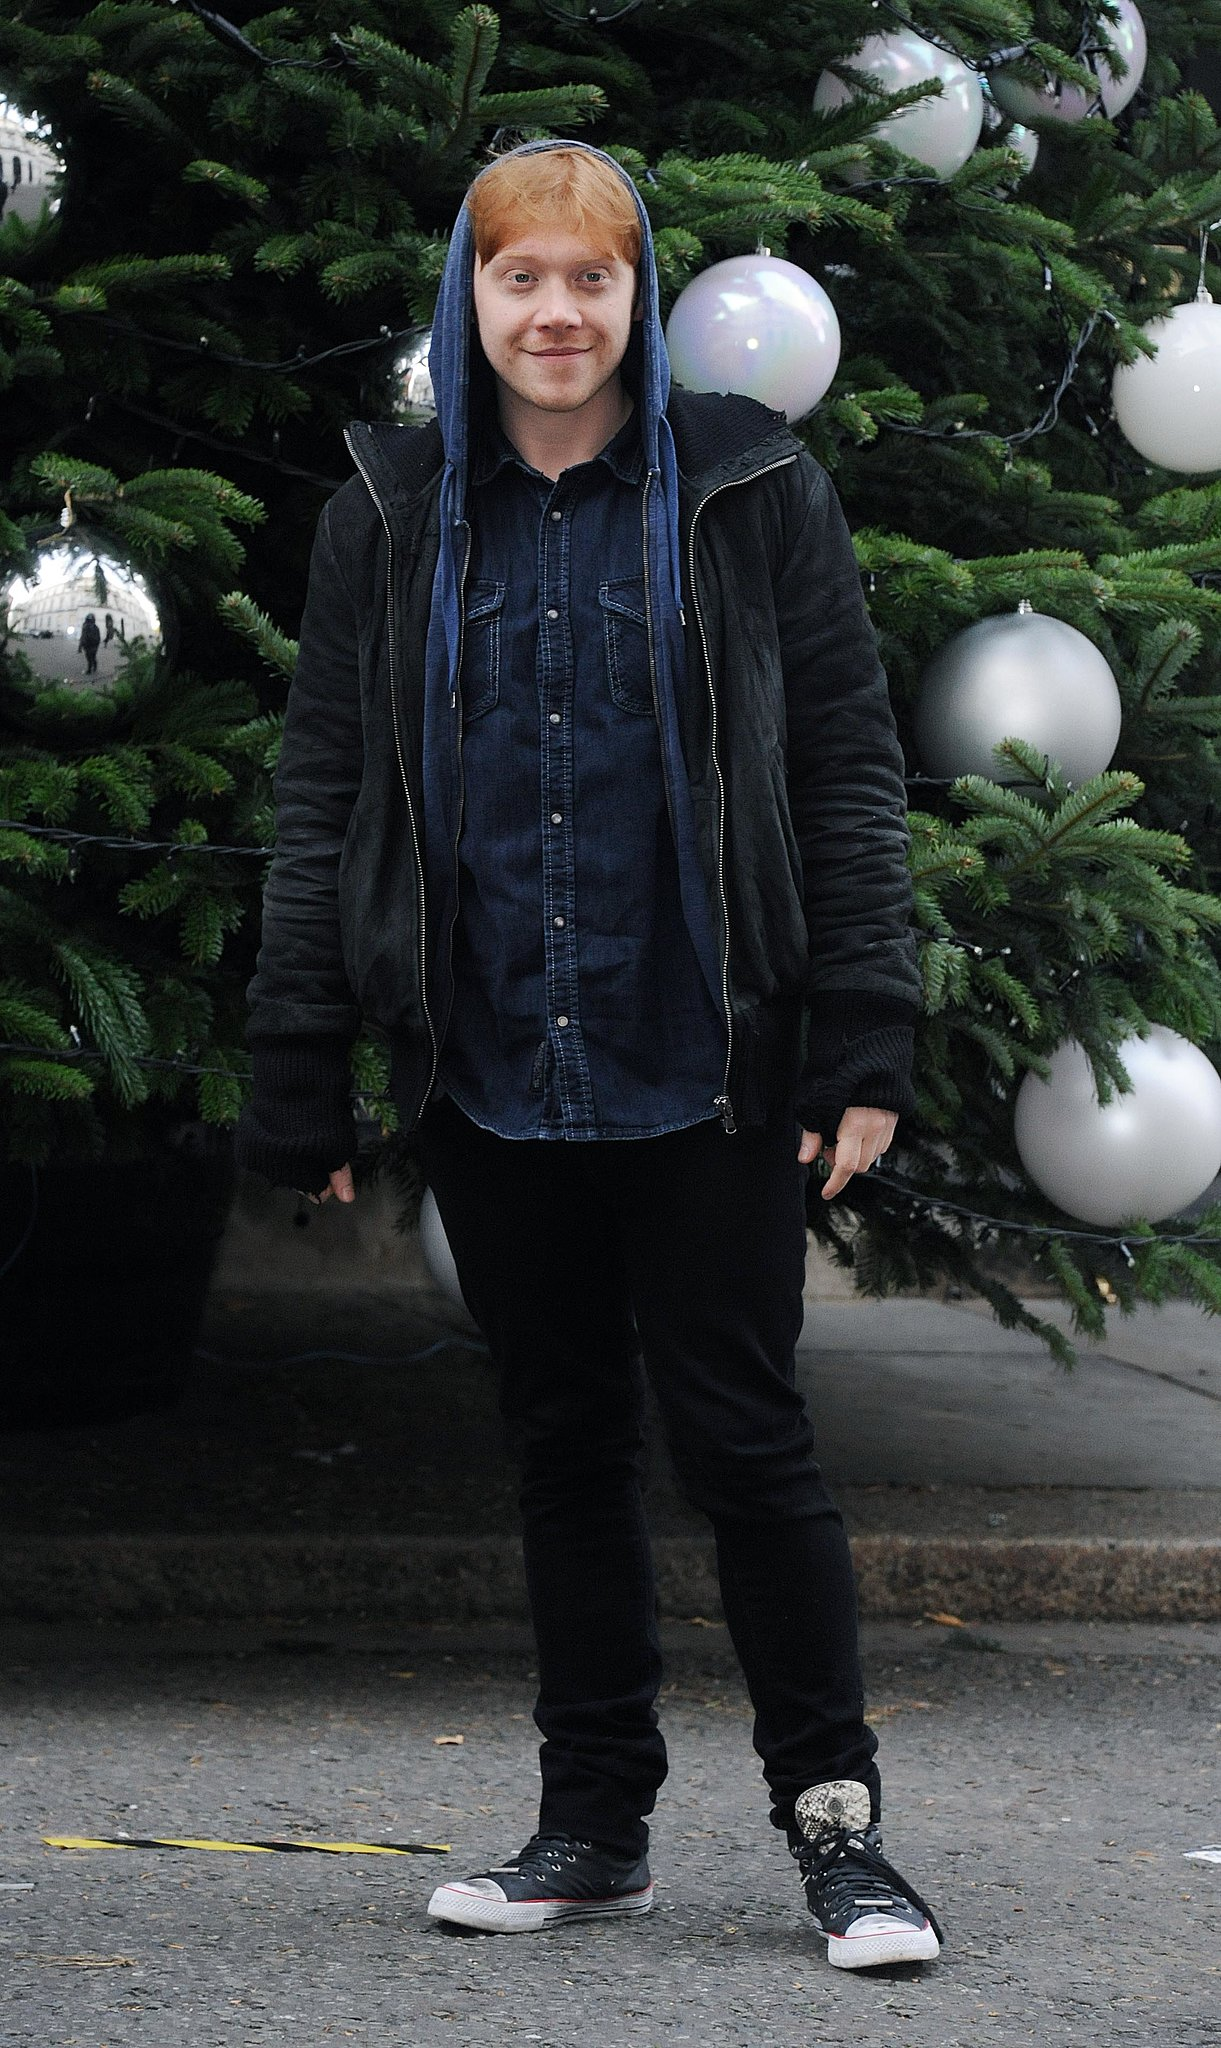 Rupert Grint bundled up for the Downing Street Christmas Party in London, posing in front of a tree that would make Hogwarts proud.